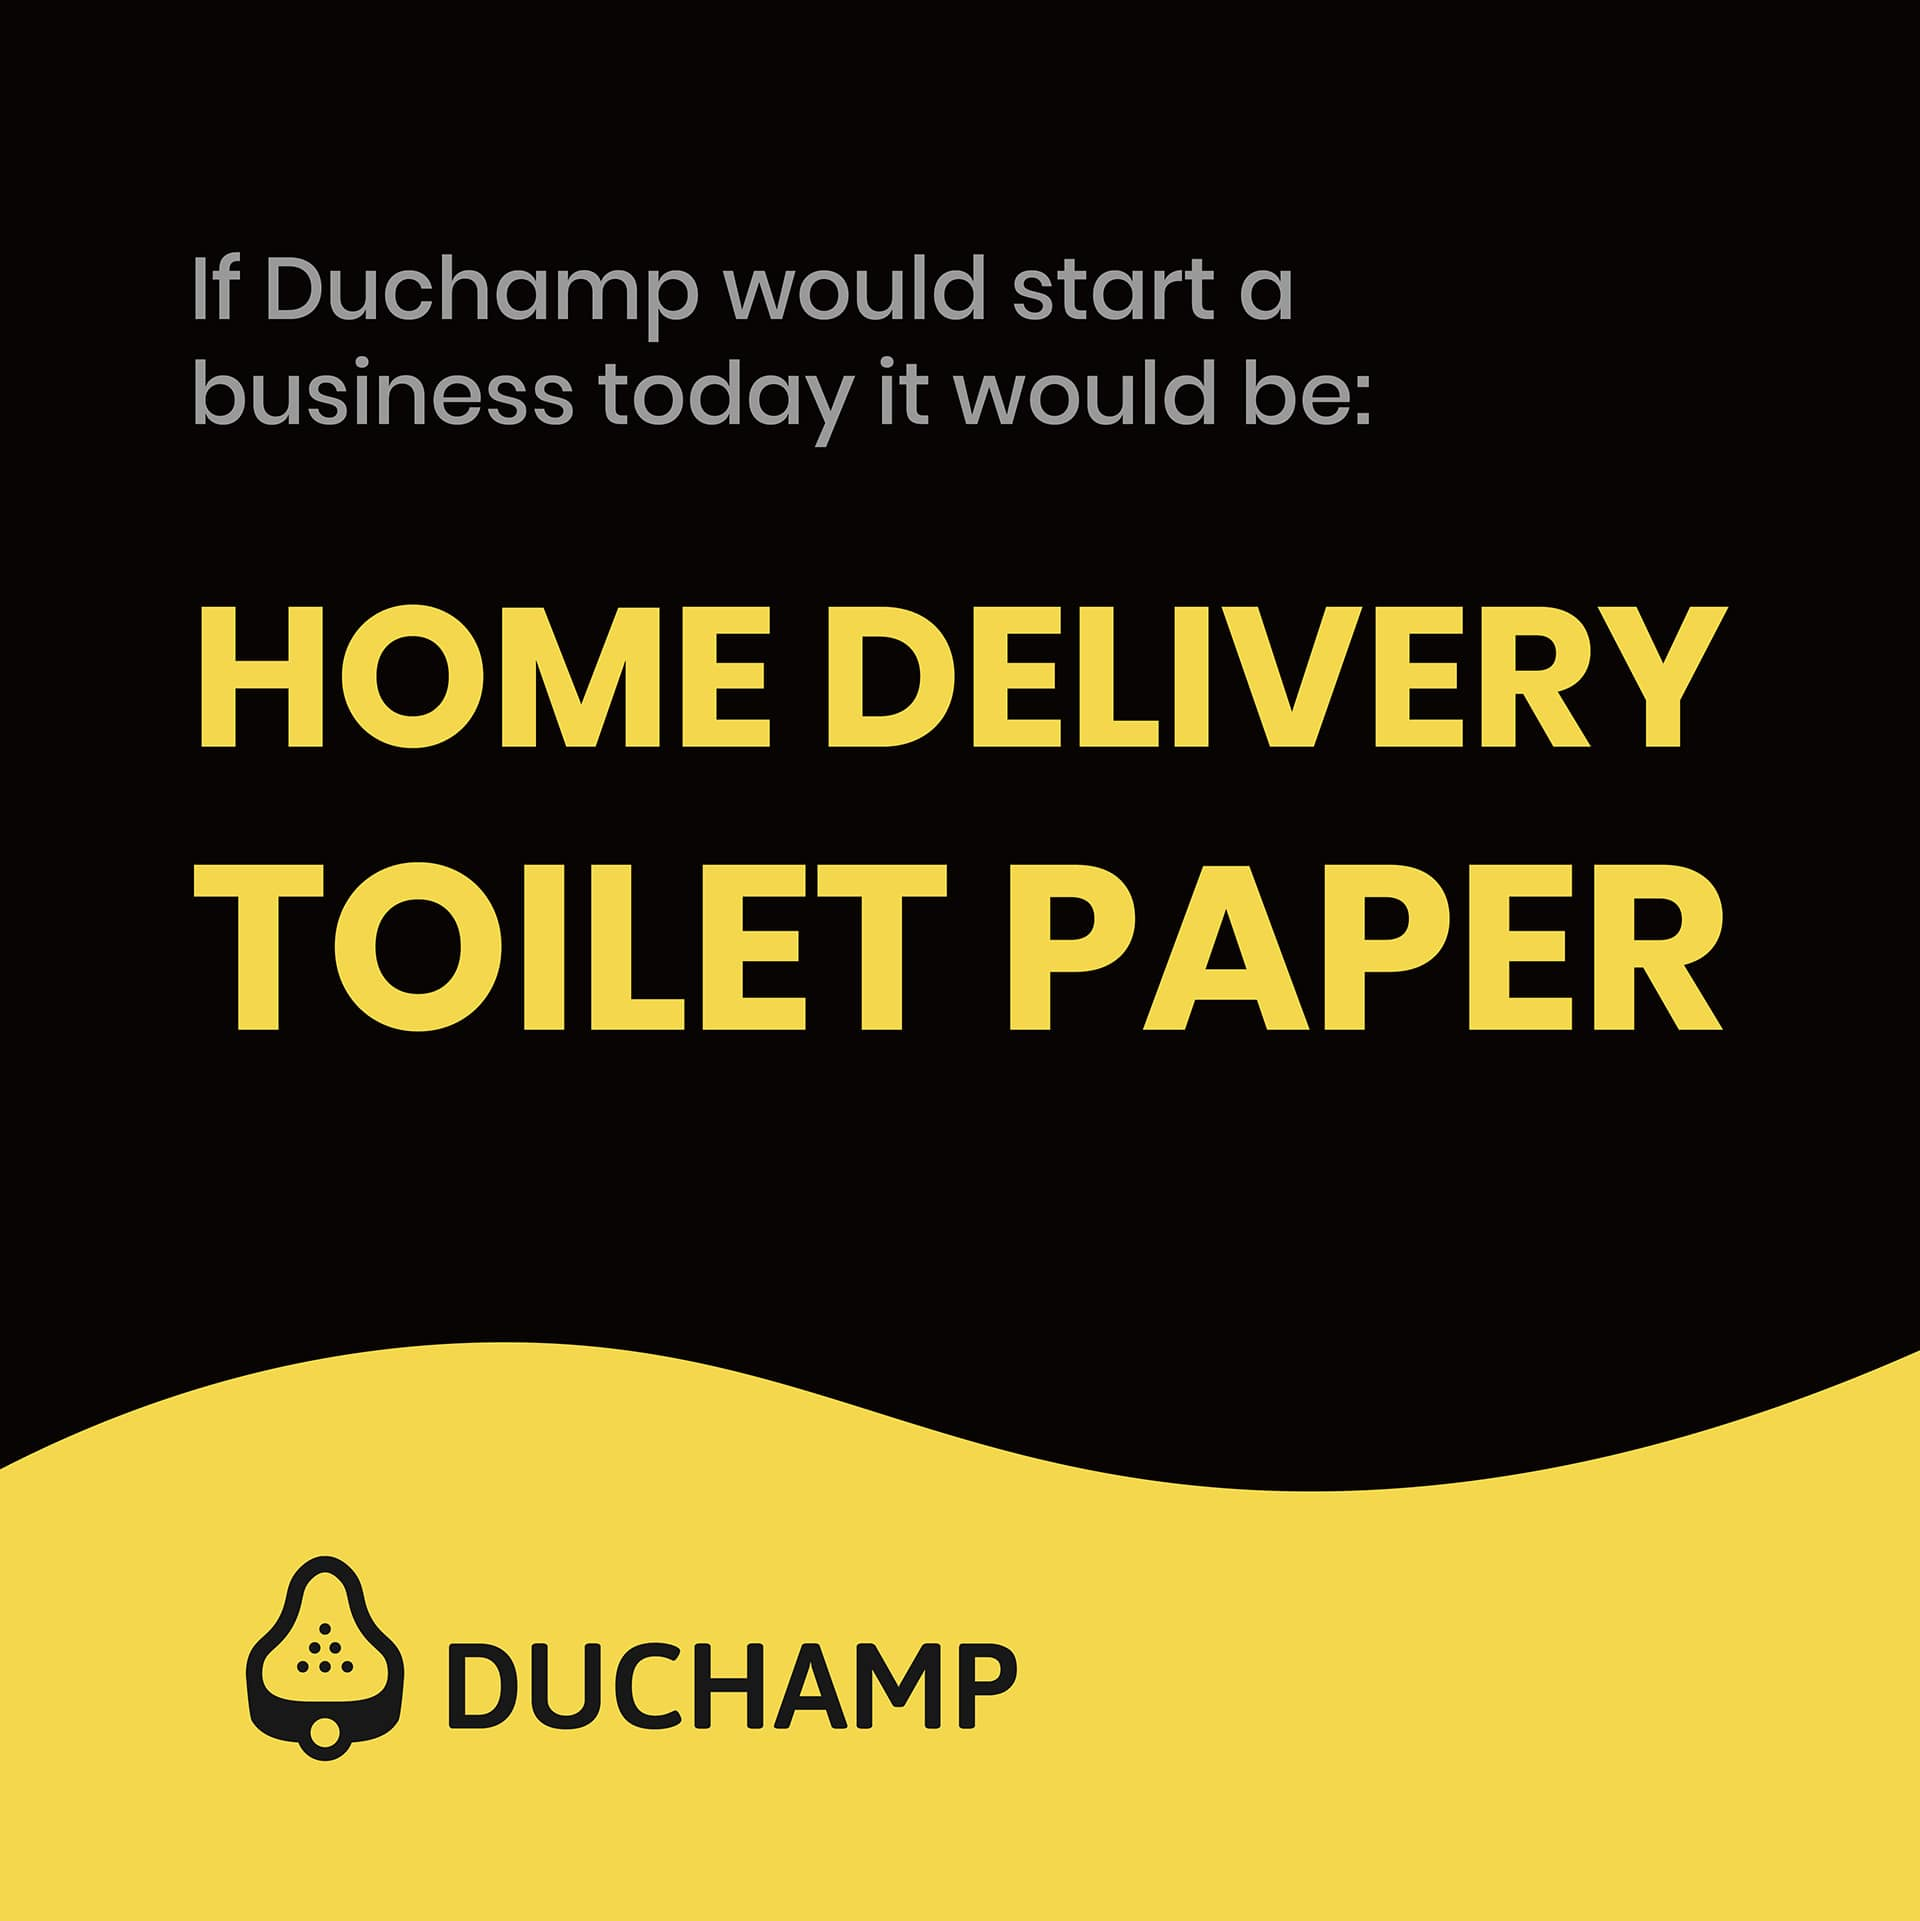 Home delivery toilet paper